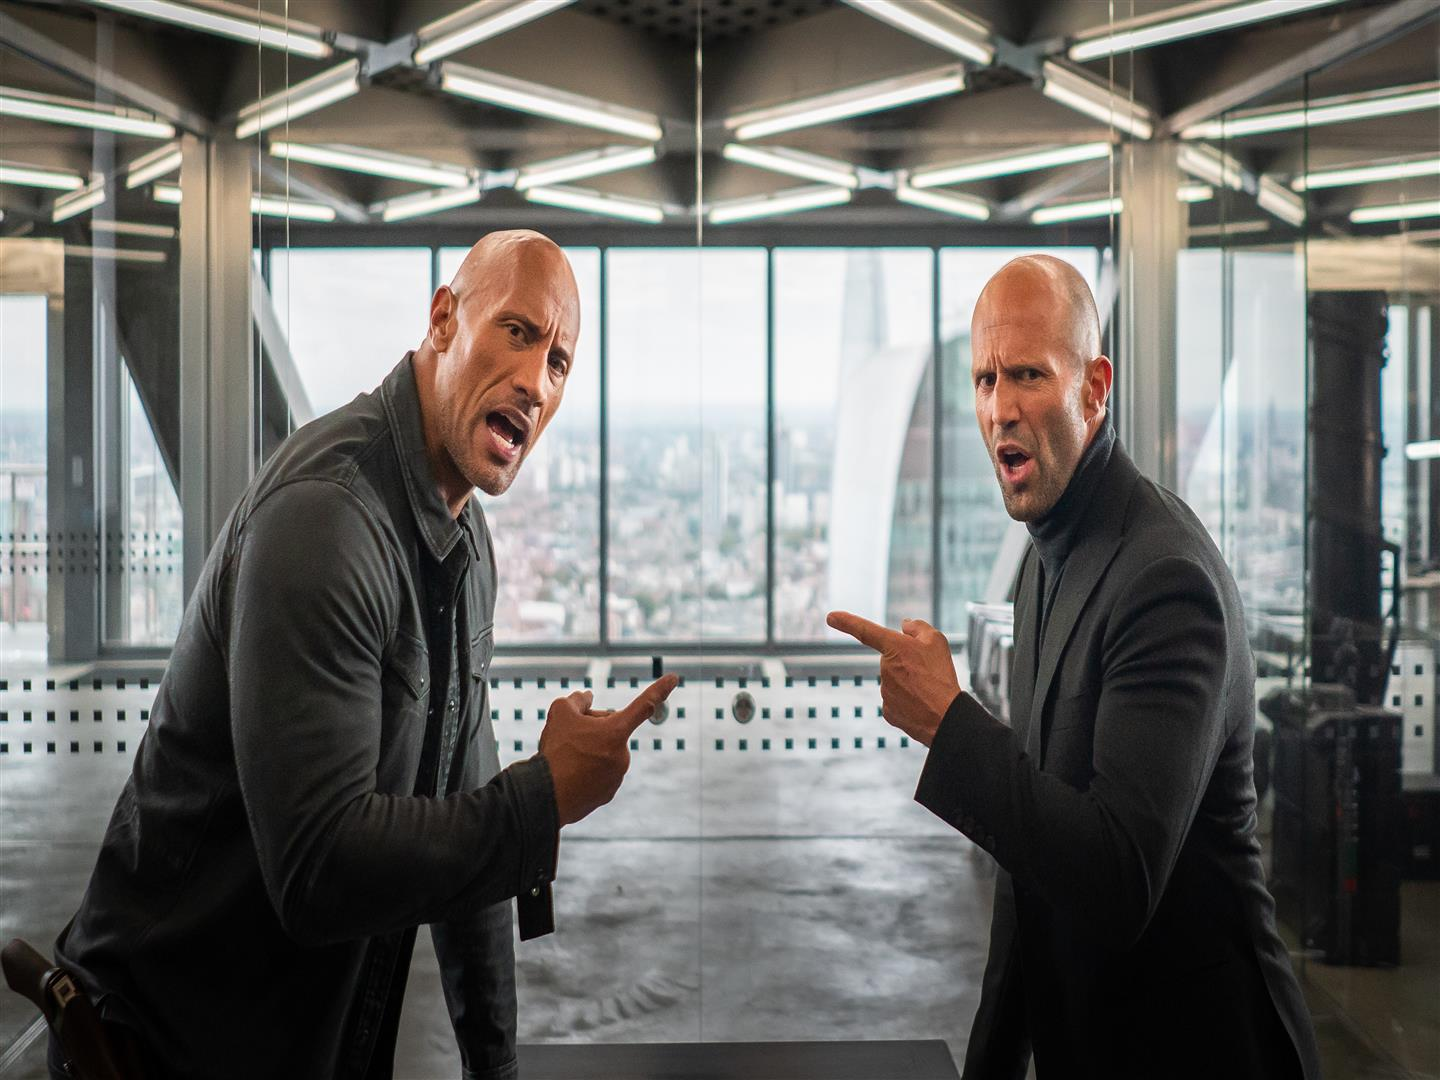 1440x1080 Fast and Furious Presents Movie Actor Dwayne Johnson as Hobbs and Jason Statham as Shaw